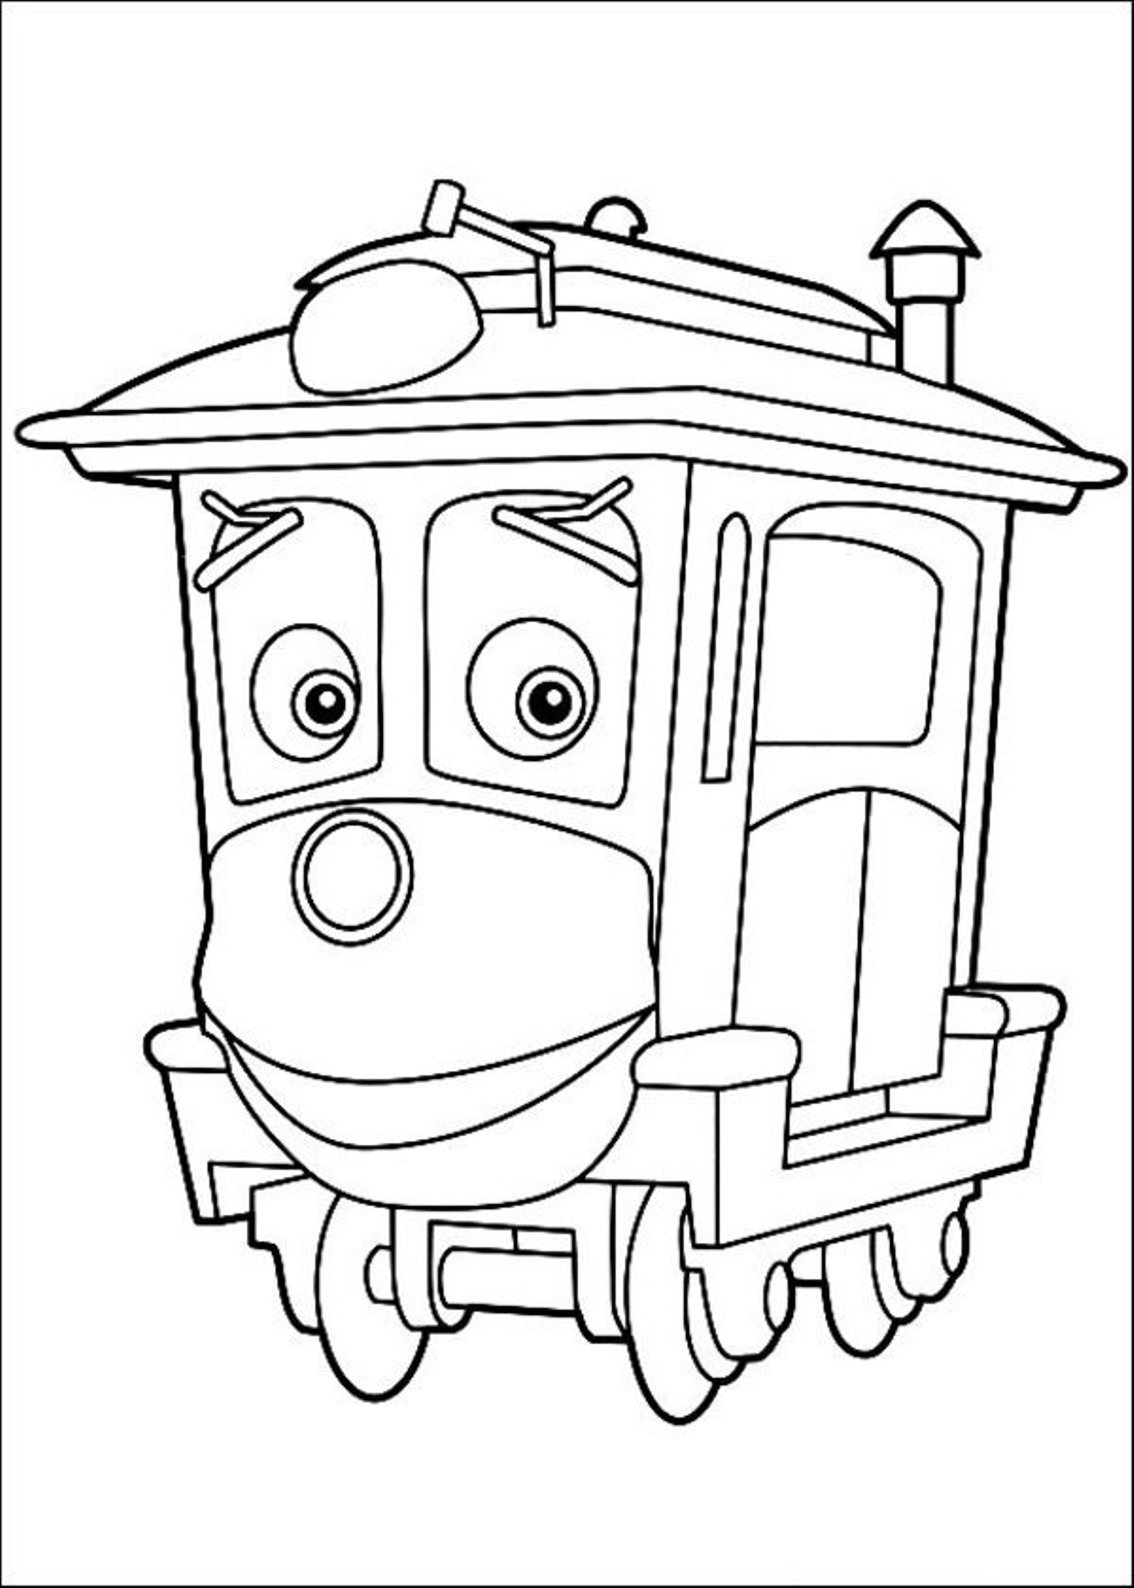 This is an image of Mesmerizing chuggington coloring pages